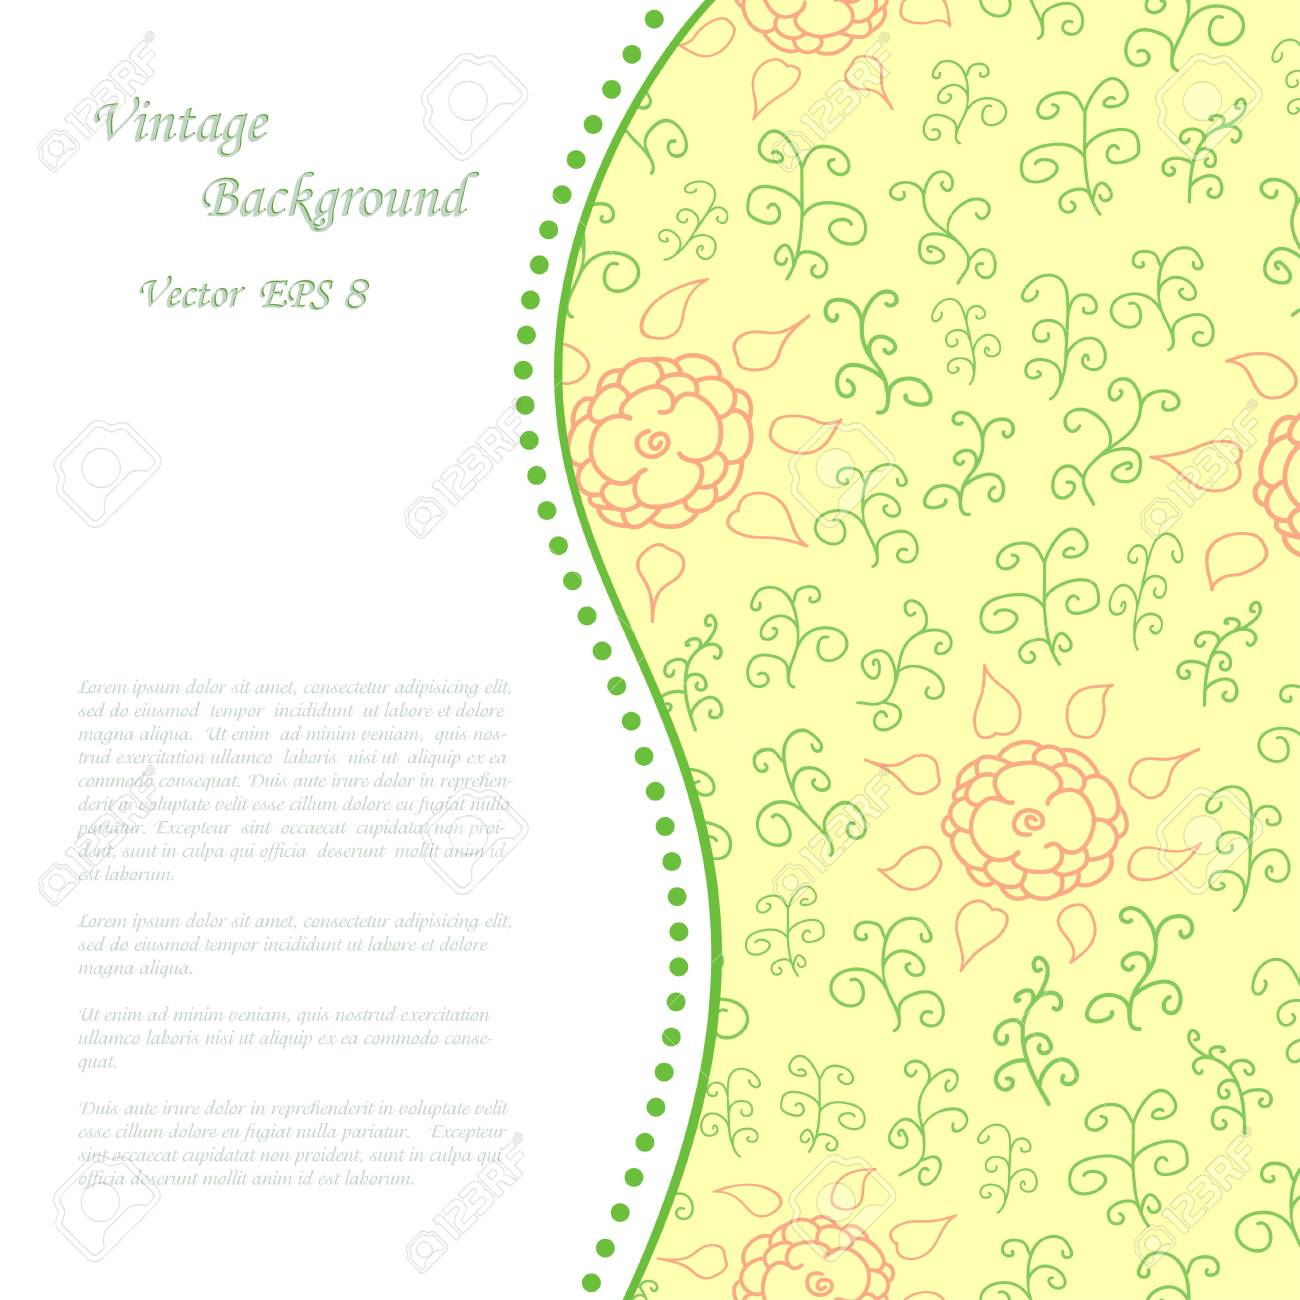 Vintage background with flowers Stock Vector - 14891531